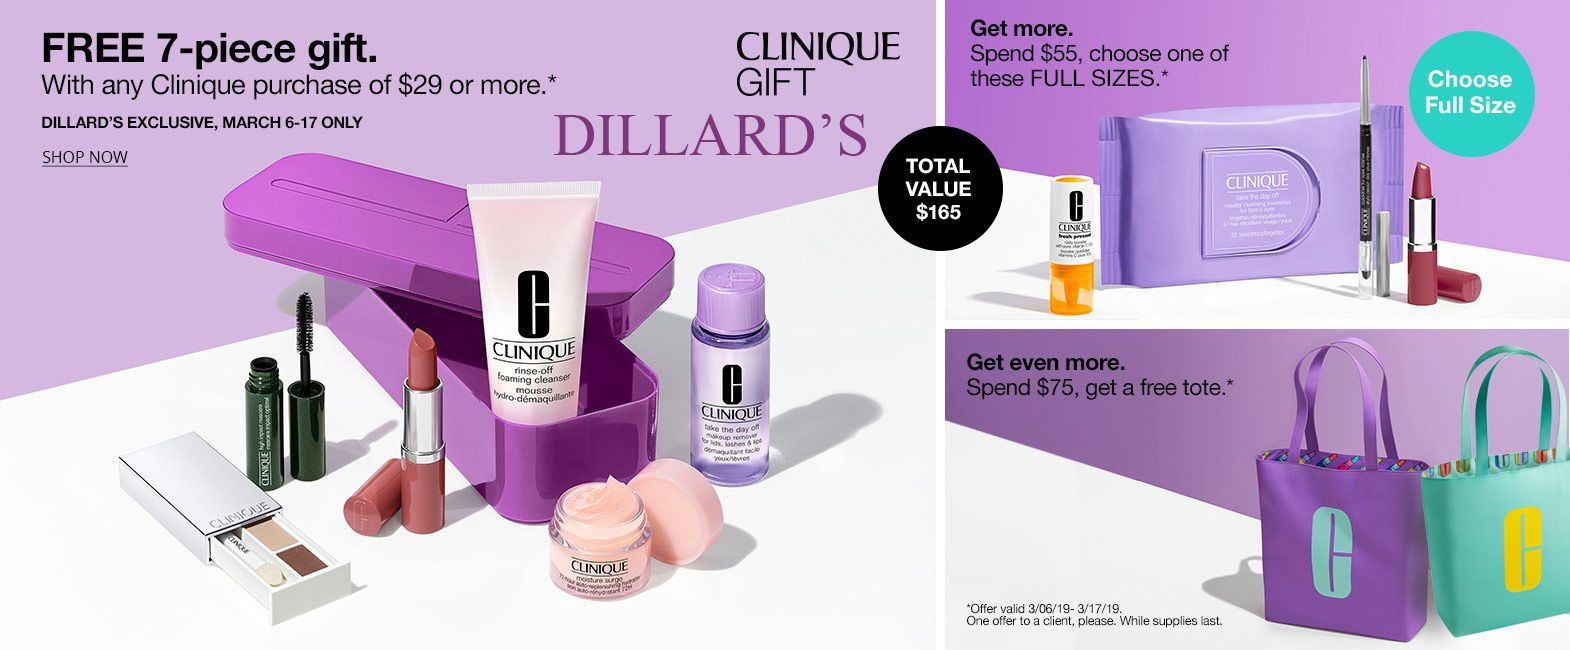 a0691e97516 Spring Clinique 7-pc gift - yours when you spend $29 or more. Spend more to  add more freebies.